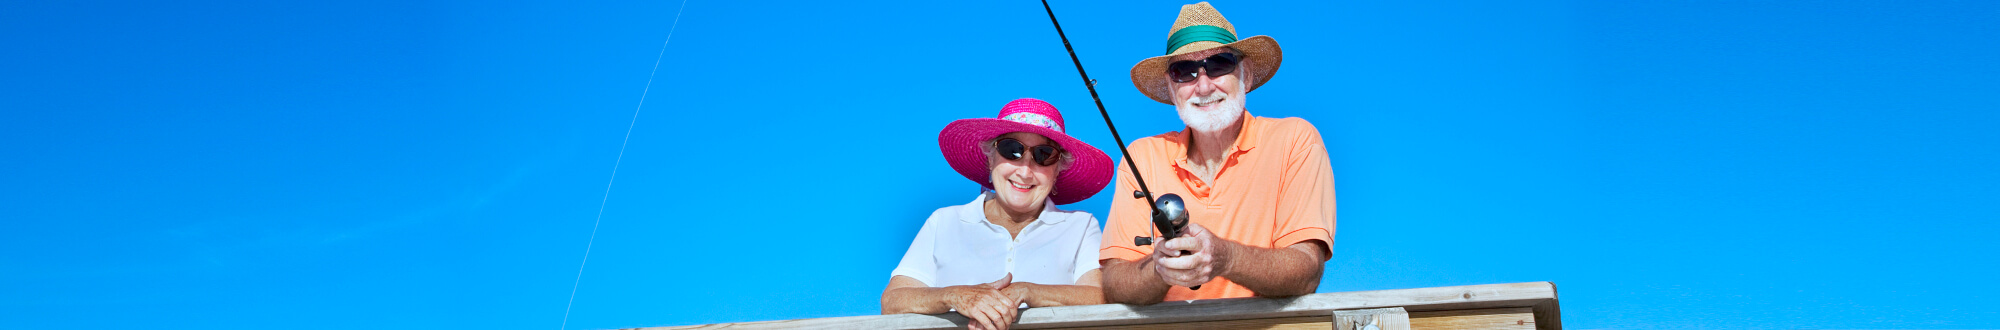 elderly couple wearing hat and sunglasses